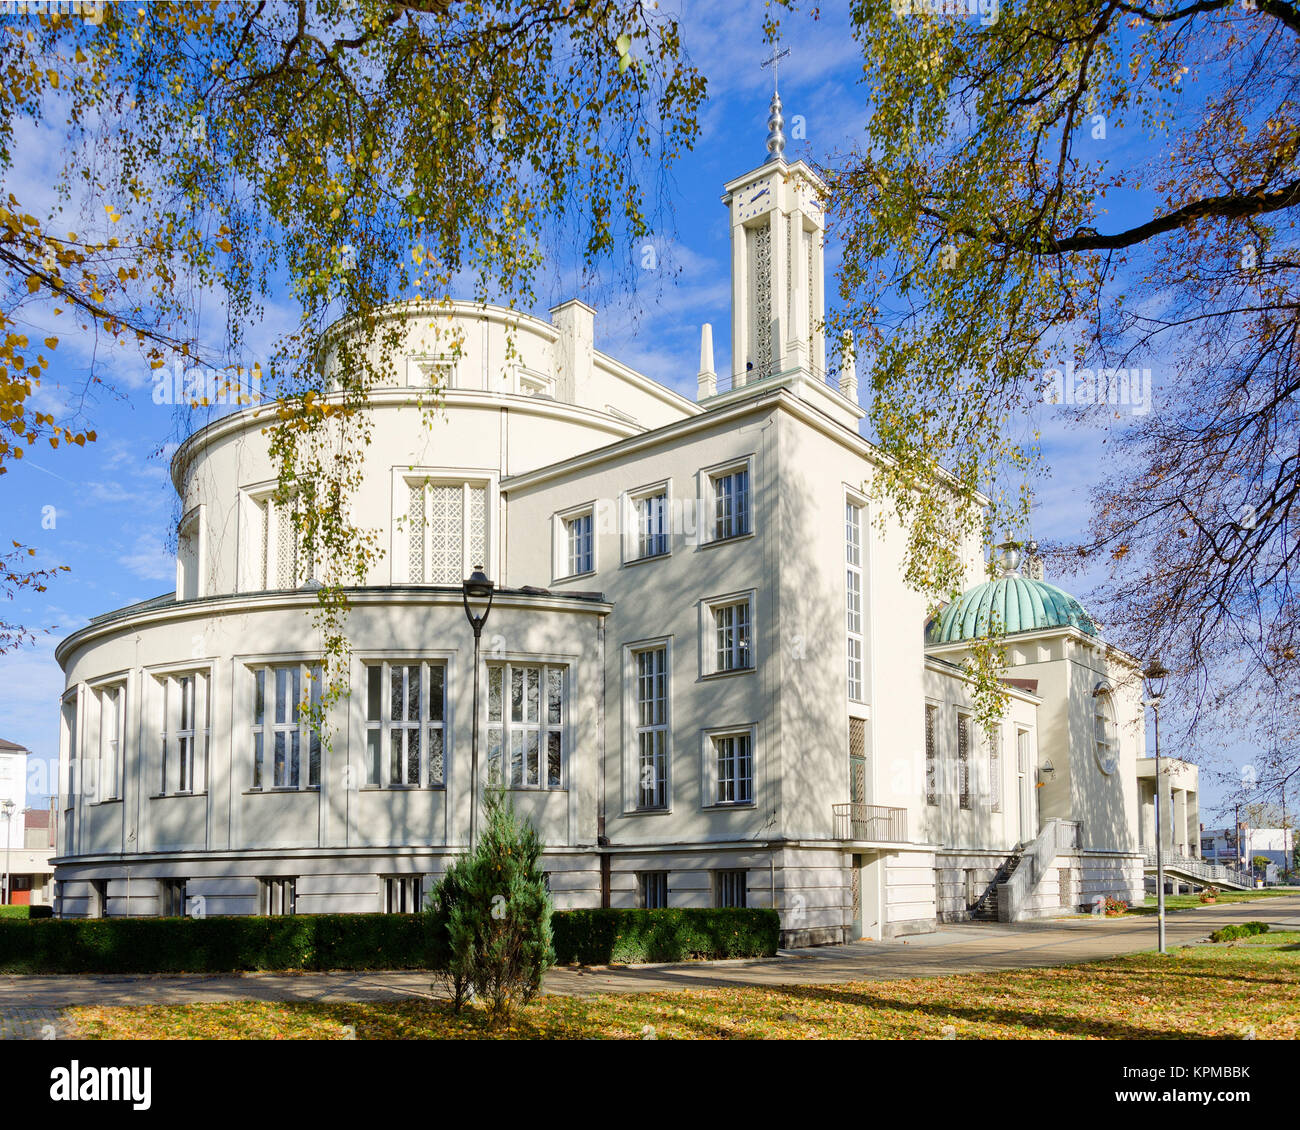 Basilica of St Mary Immaculate (Shrine of St Maximilian Kolbe) in Niepokalanów / Teresin nearby Sochaczew. - Stock Image